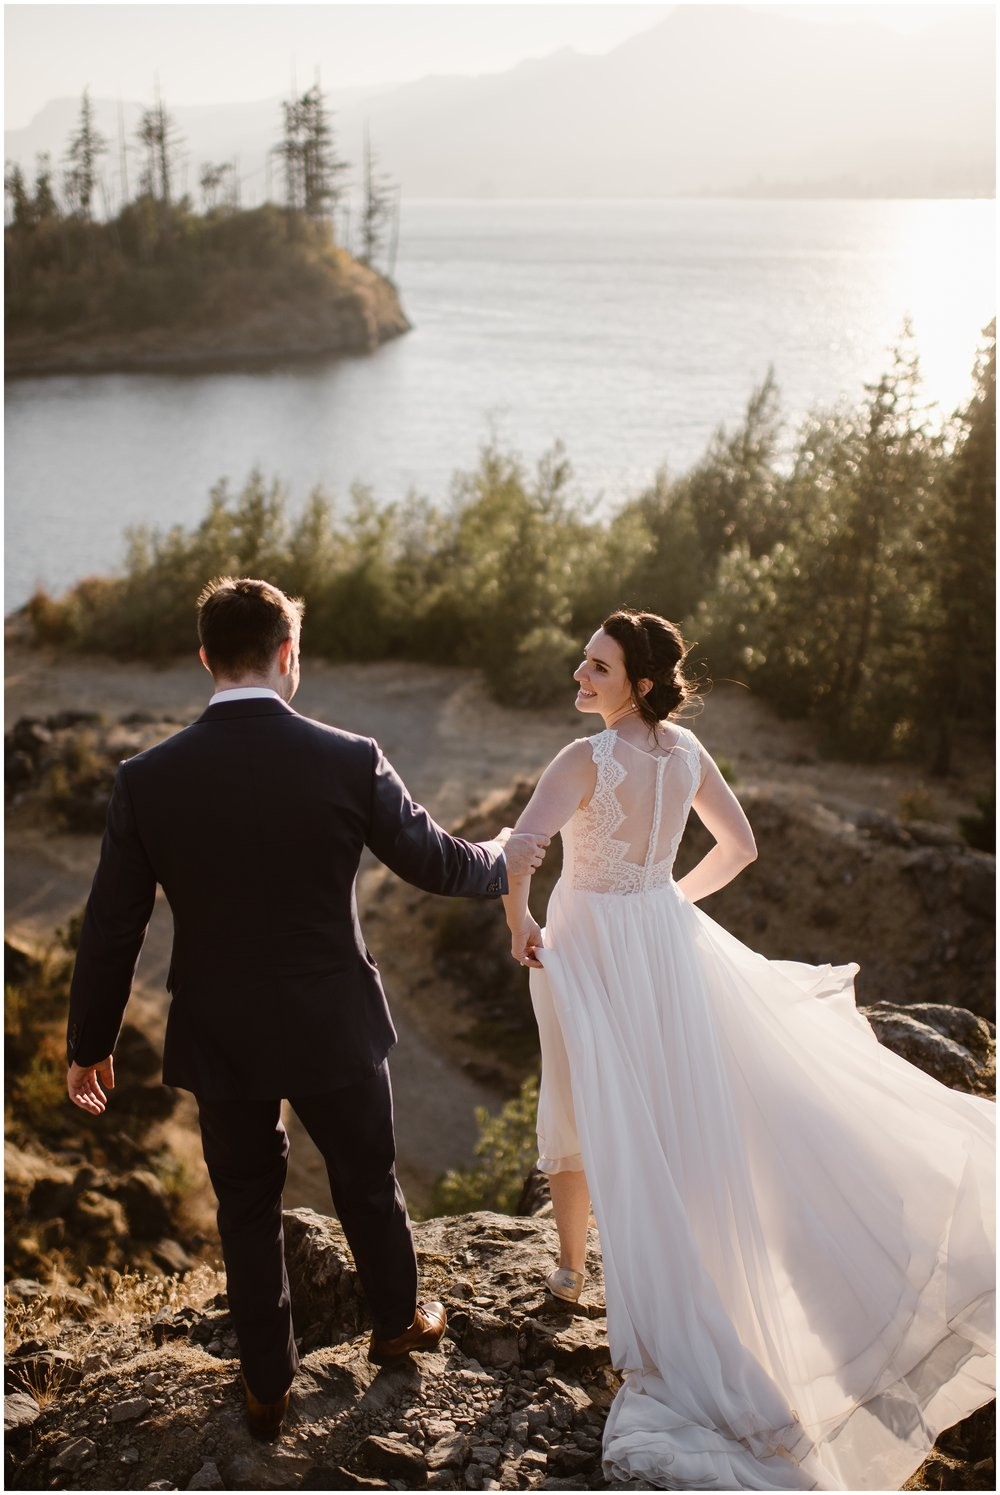 With their backs to the camera, Lauryn and David walk toward the edge of a cliff with the stunning Columbia River in the background. The two wanted to include some special exploring time on thei own after their family elopemet ceremony.